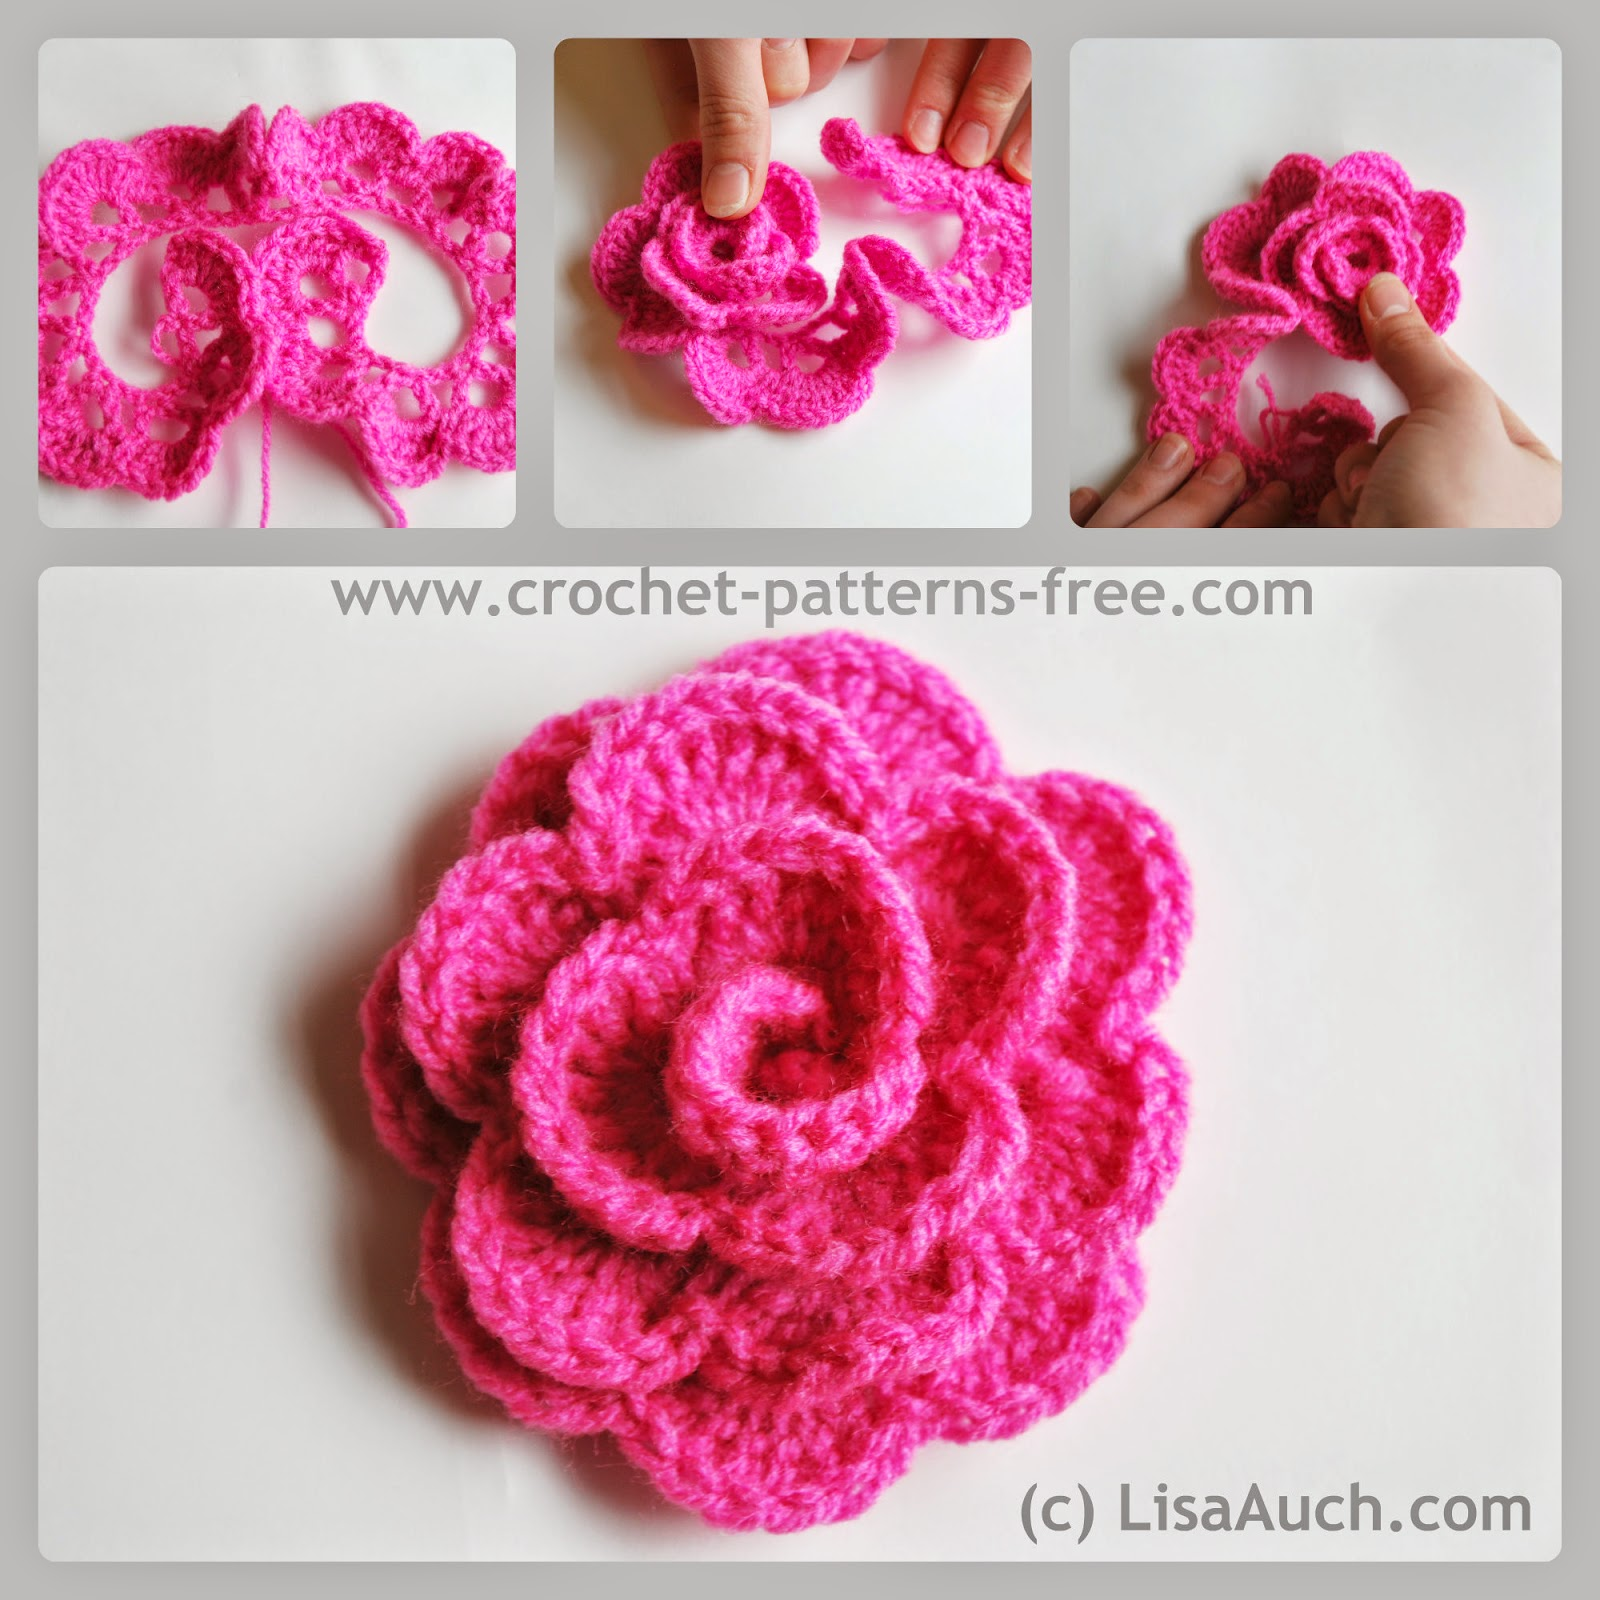 Rose Hip Blog Crochet Flower Pattern 2016 Car Release Date